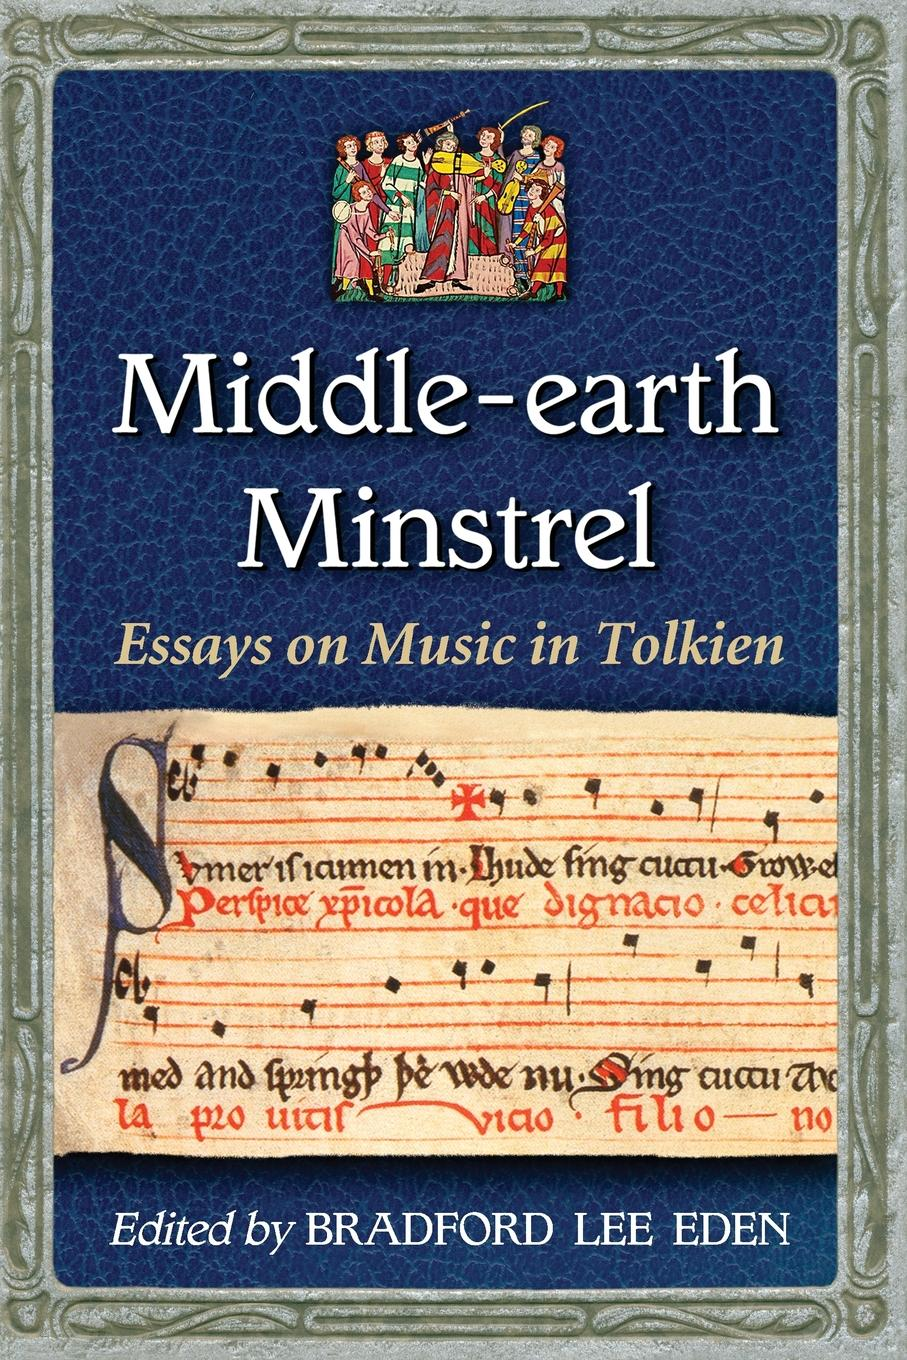 Middle-Earth Minstrel. Essays on Music in Tolkien david harvey the song of middle earth j r r tolkien's themes symbols and myths